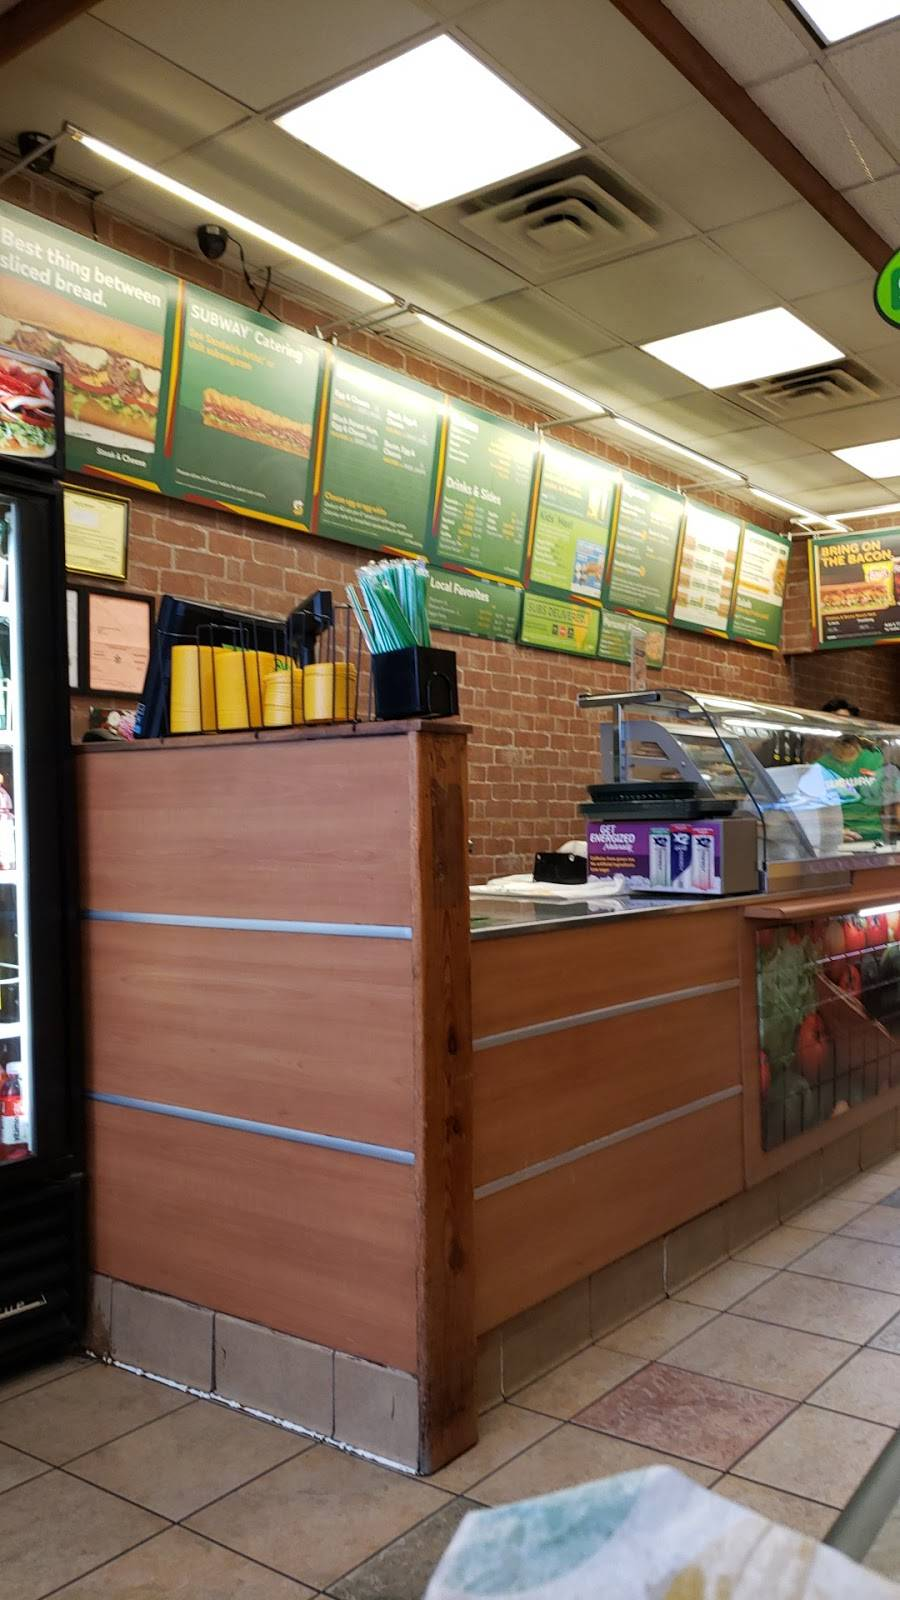 Subway Restaurants | restaurant | 1047 E 163rd St, Bronx, NY 10459, USA | 7183785206 OR +1 718-378-5206